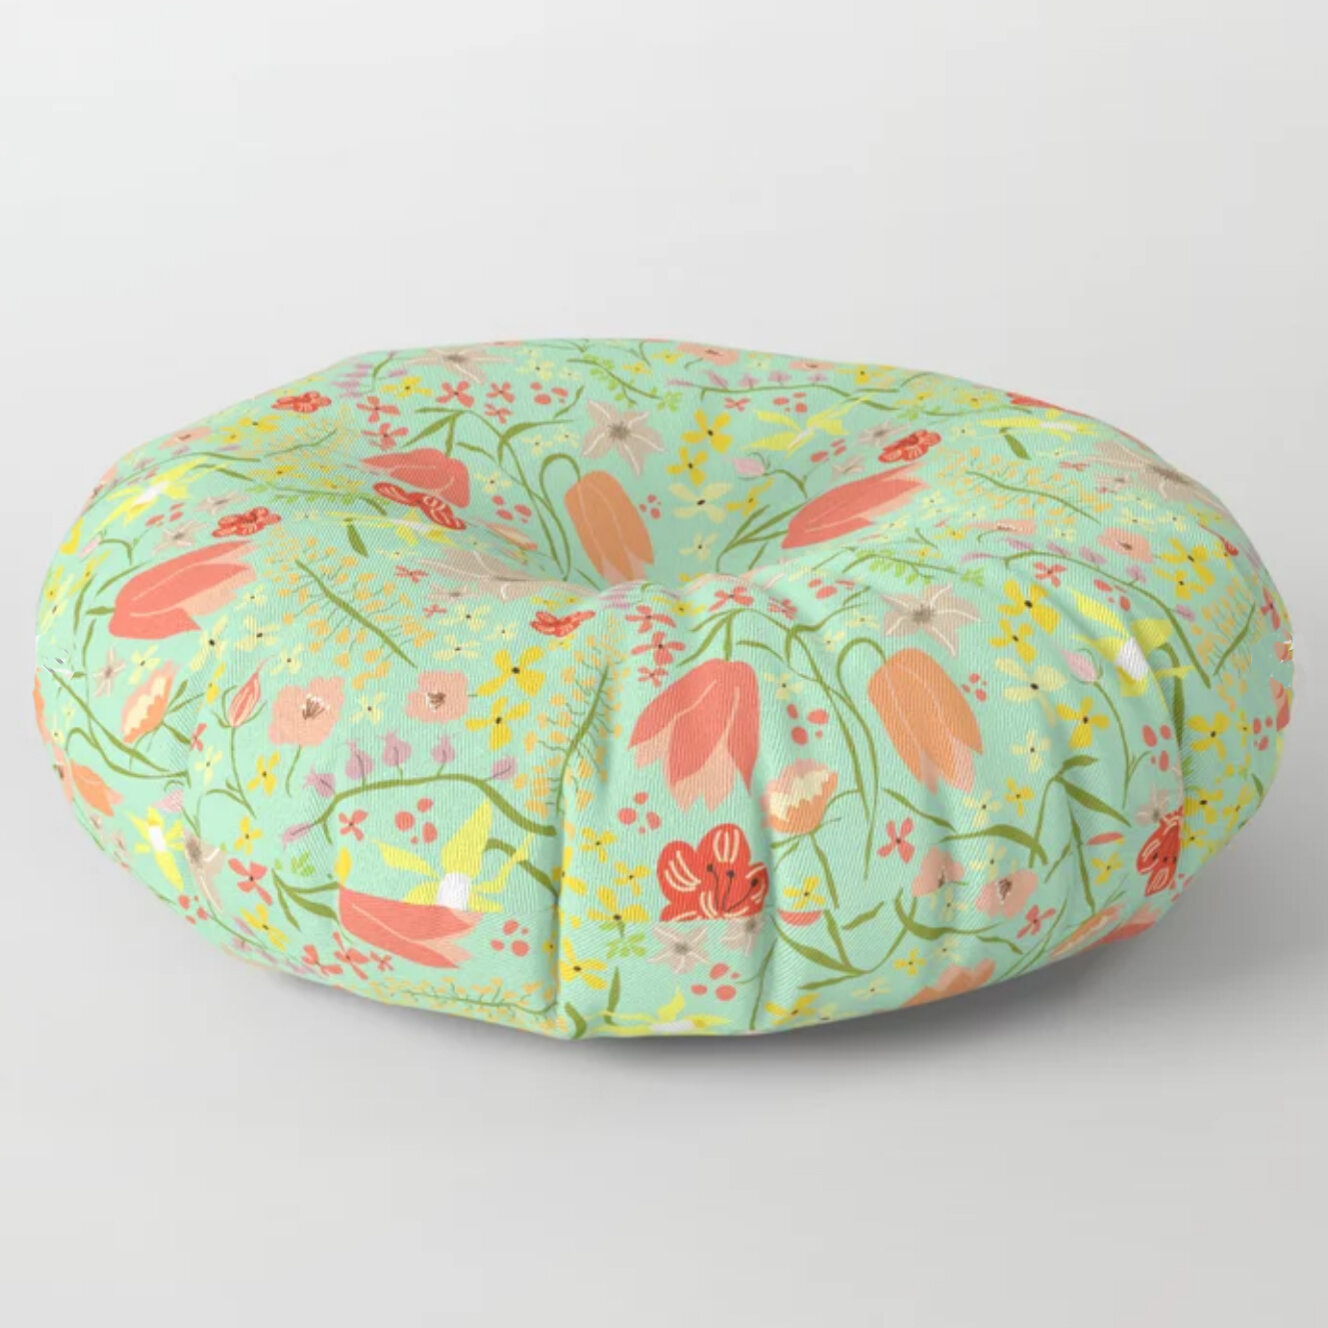 Wildflowers-mint-floorcushion-gingerdeverell.jpg